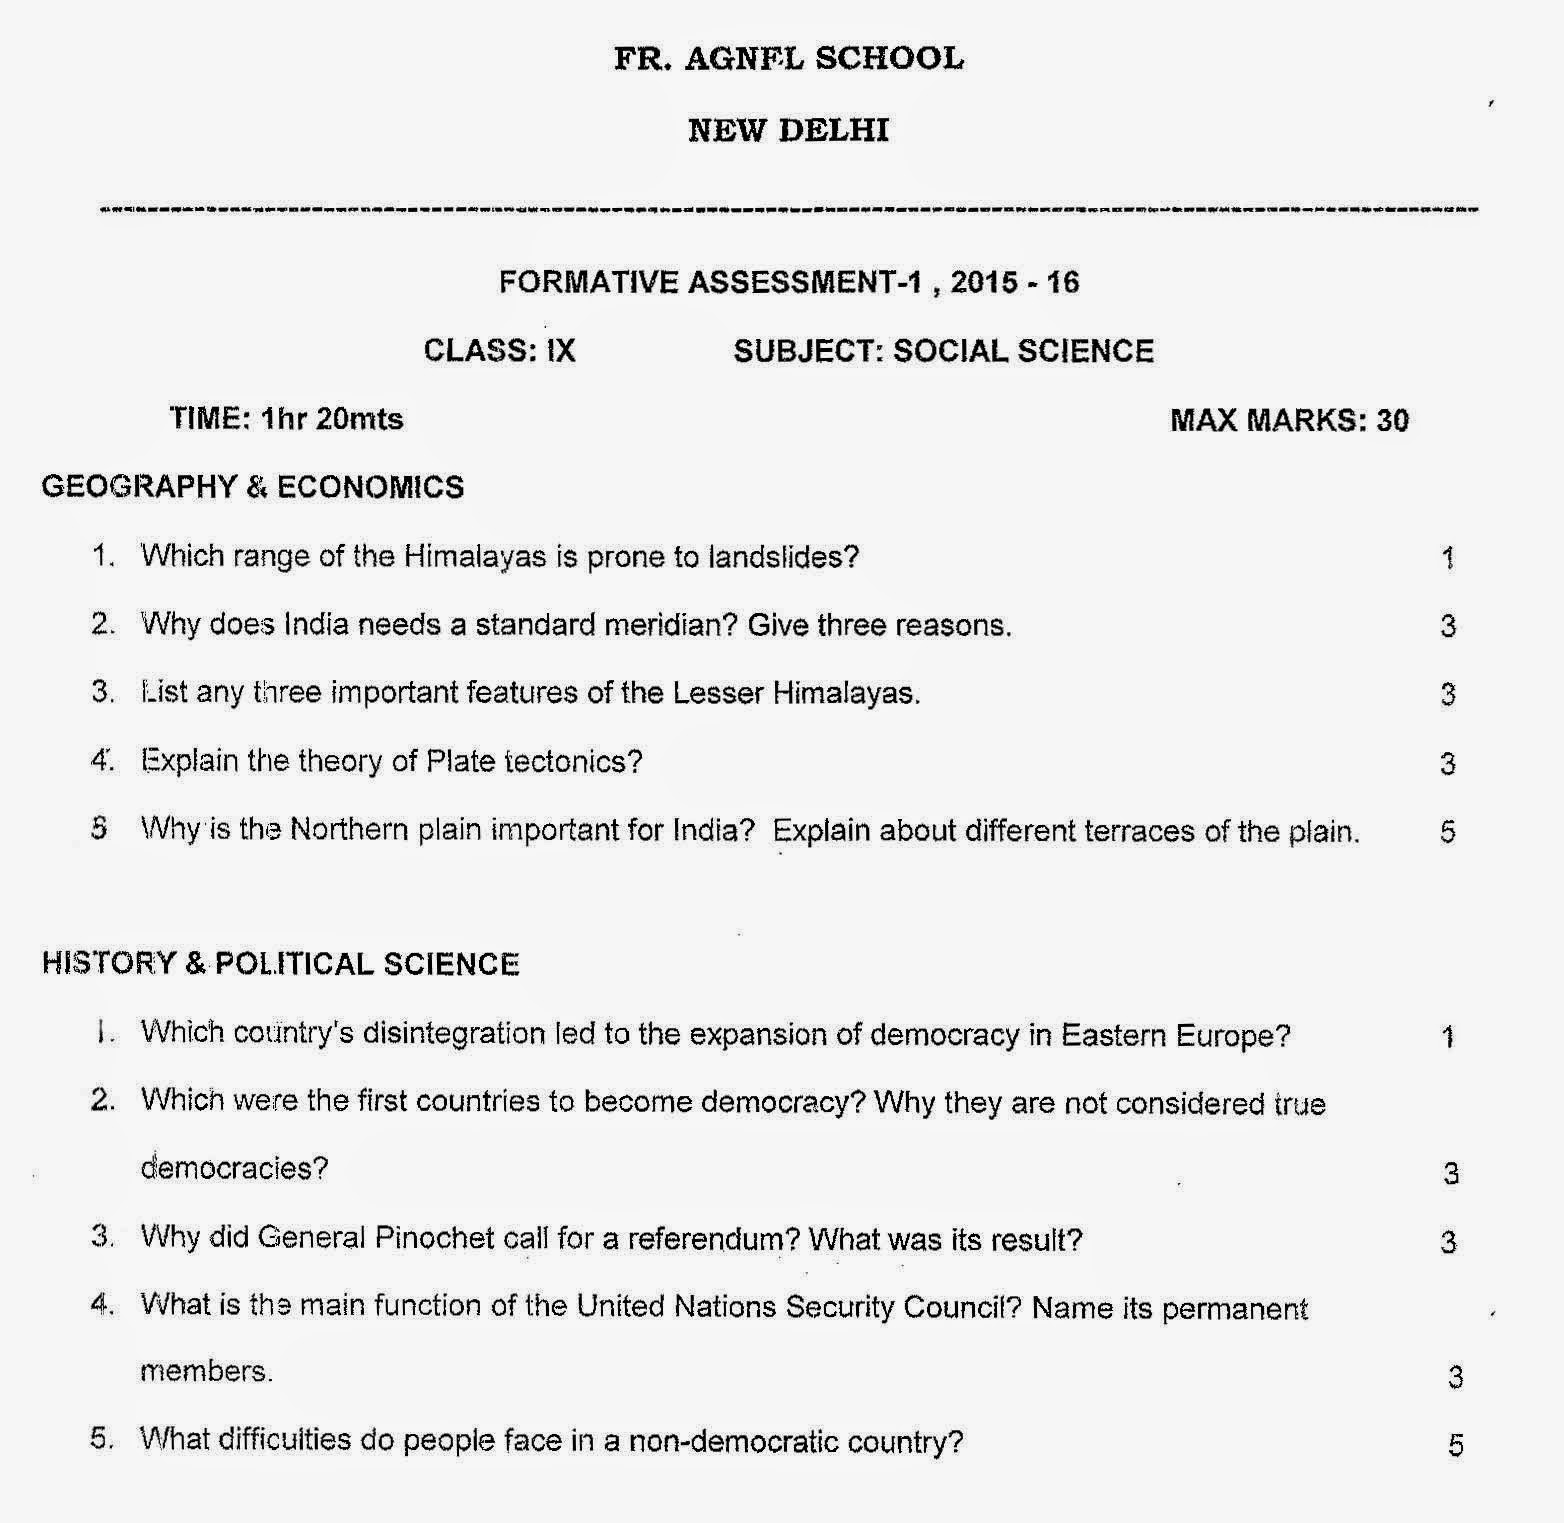 Sst4all class ix social science father agnel school question paper class ix social science father agnel school question paper fa 1 2015 2016 malvernweather Gallery